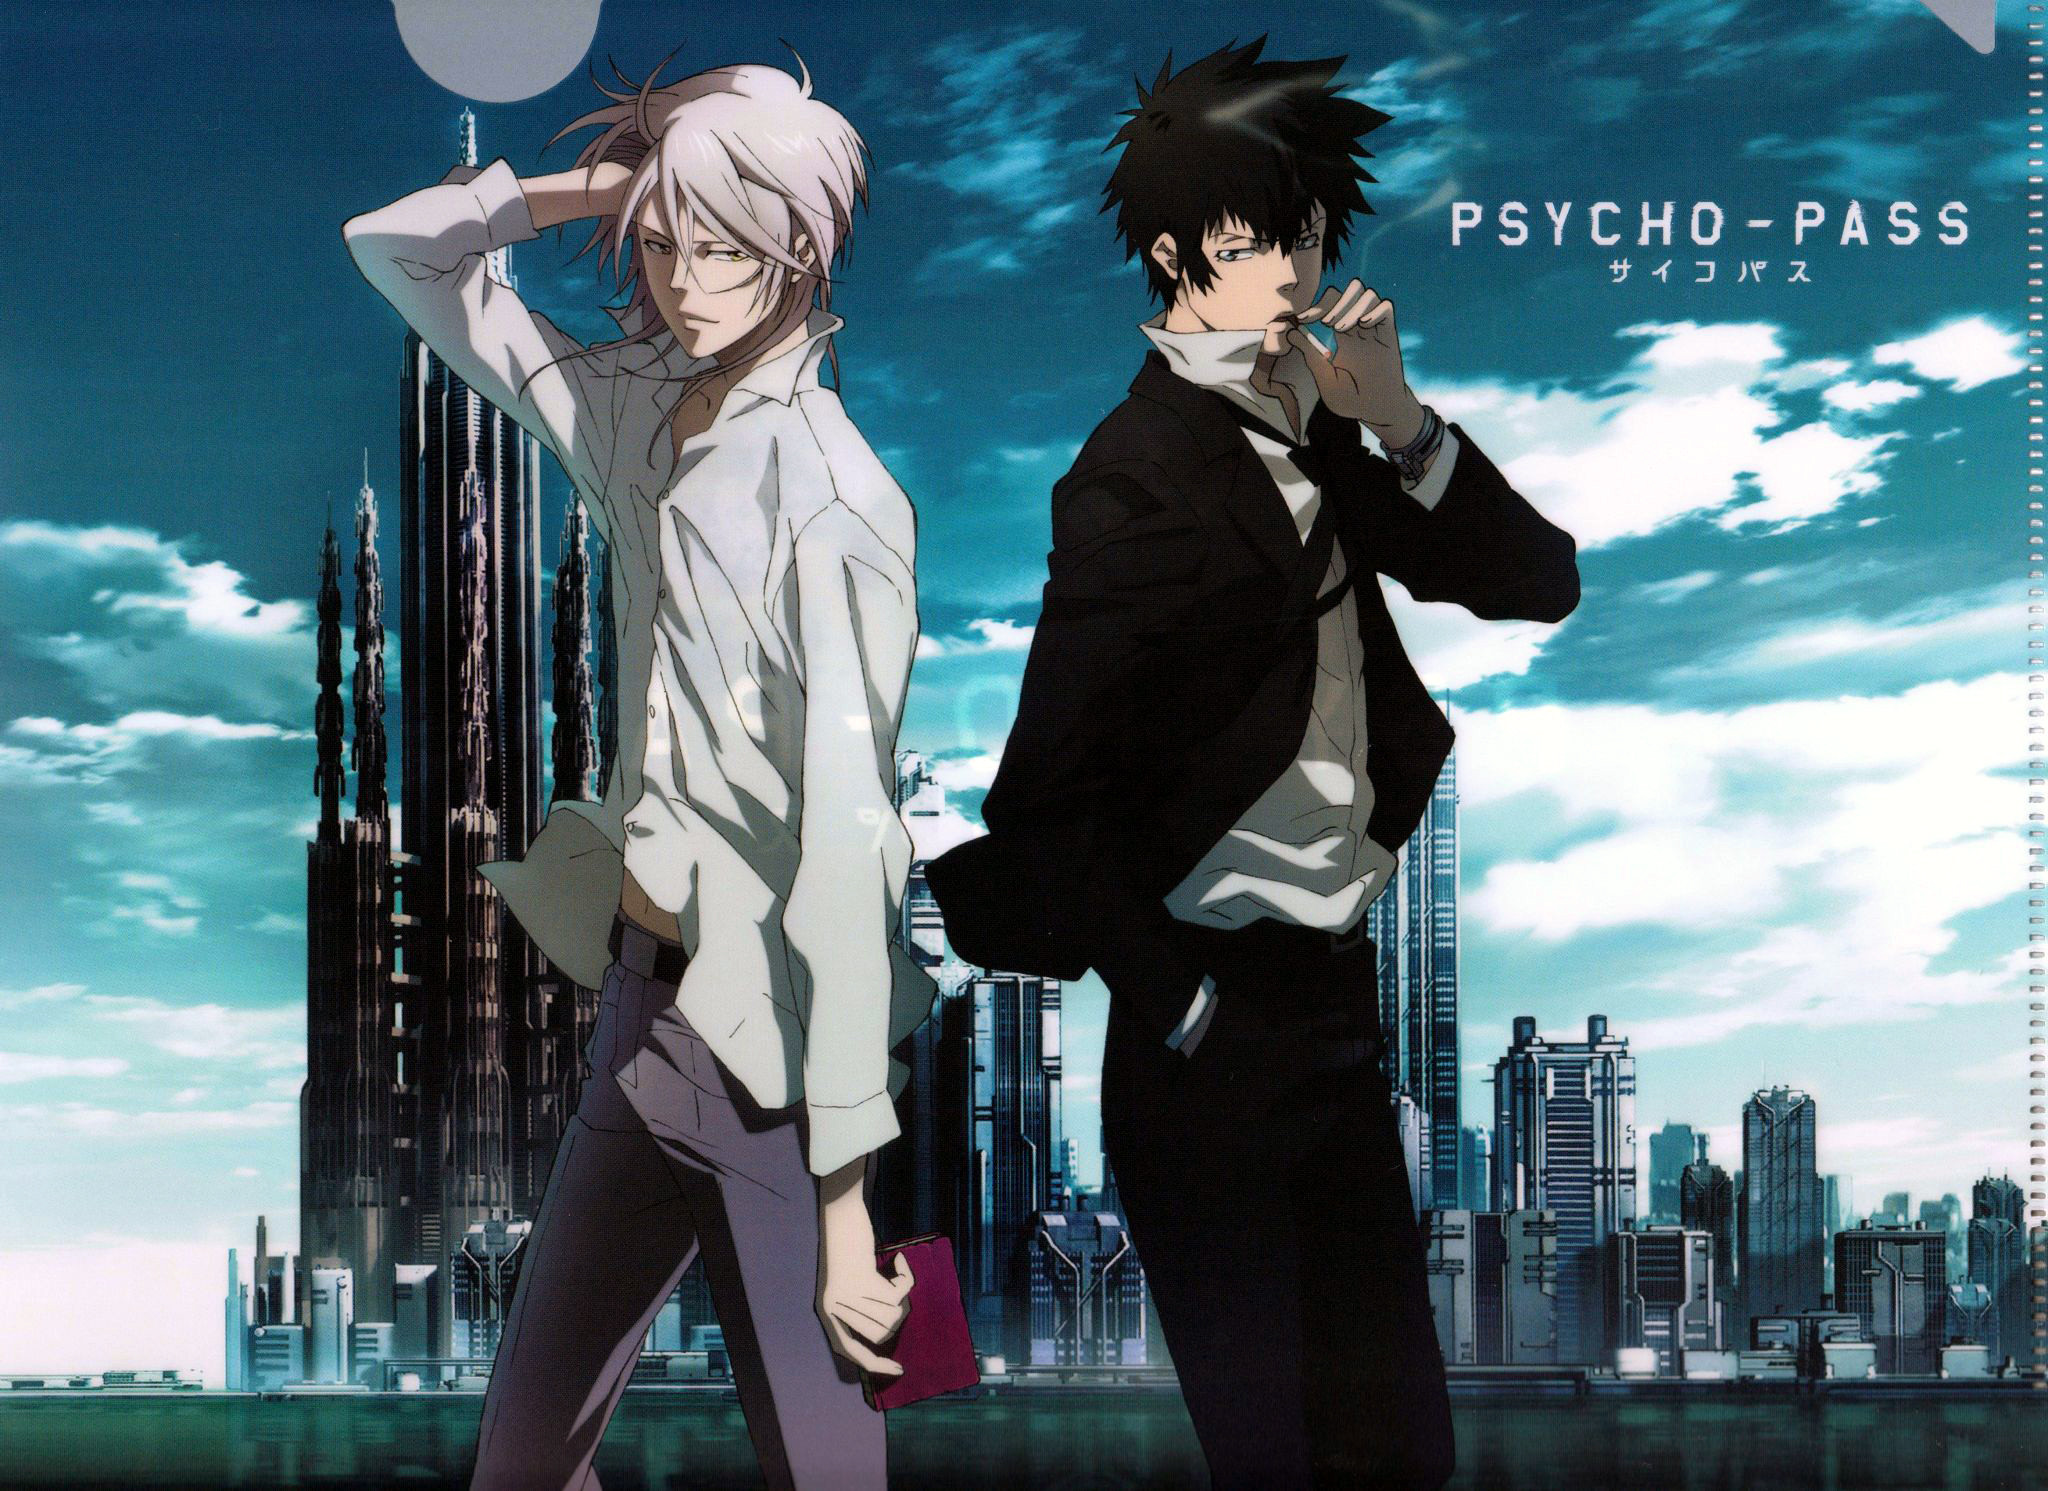 111 best Psycho Pass images on Pinterest | Psycho pass, Anime guys and  Manga anime